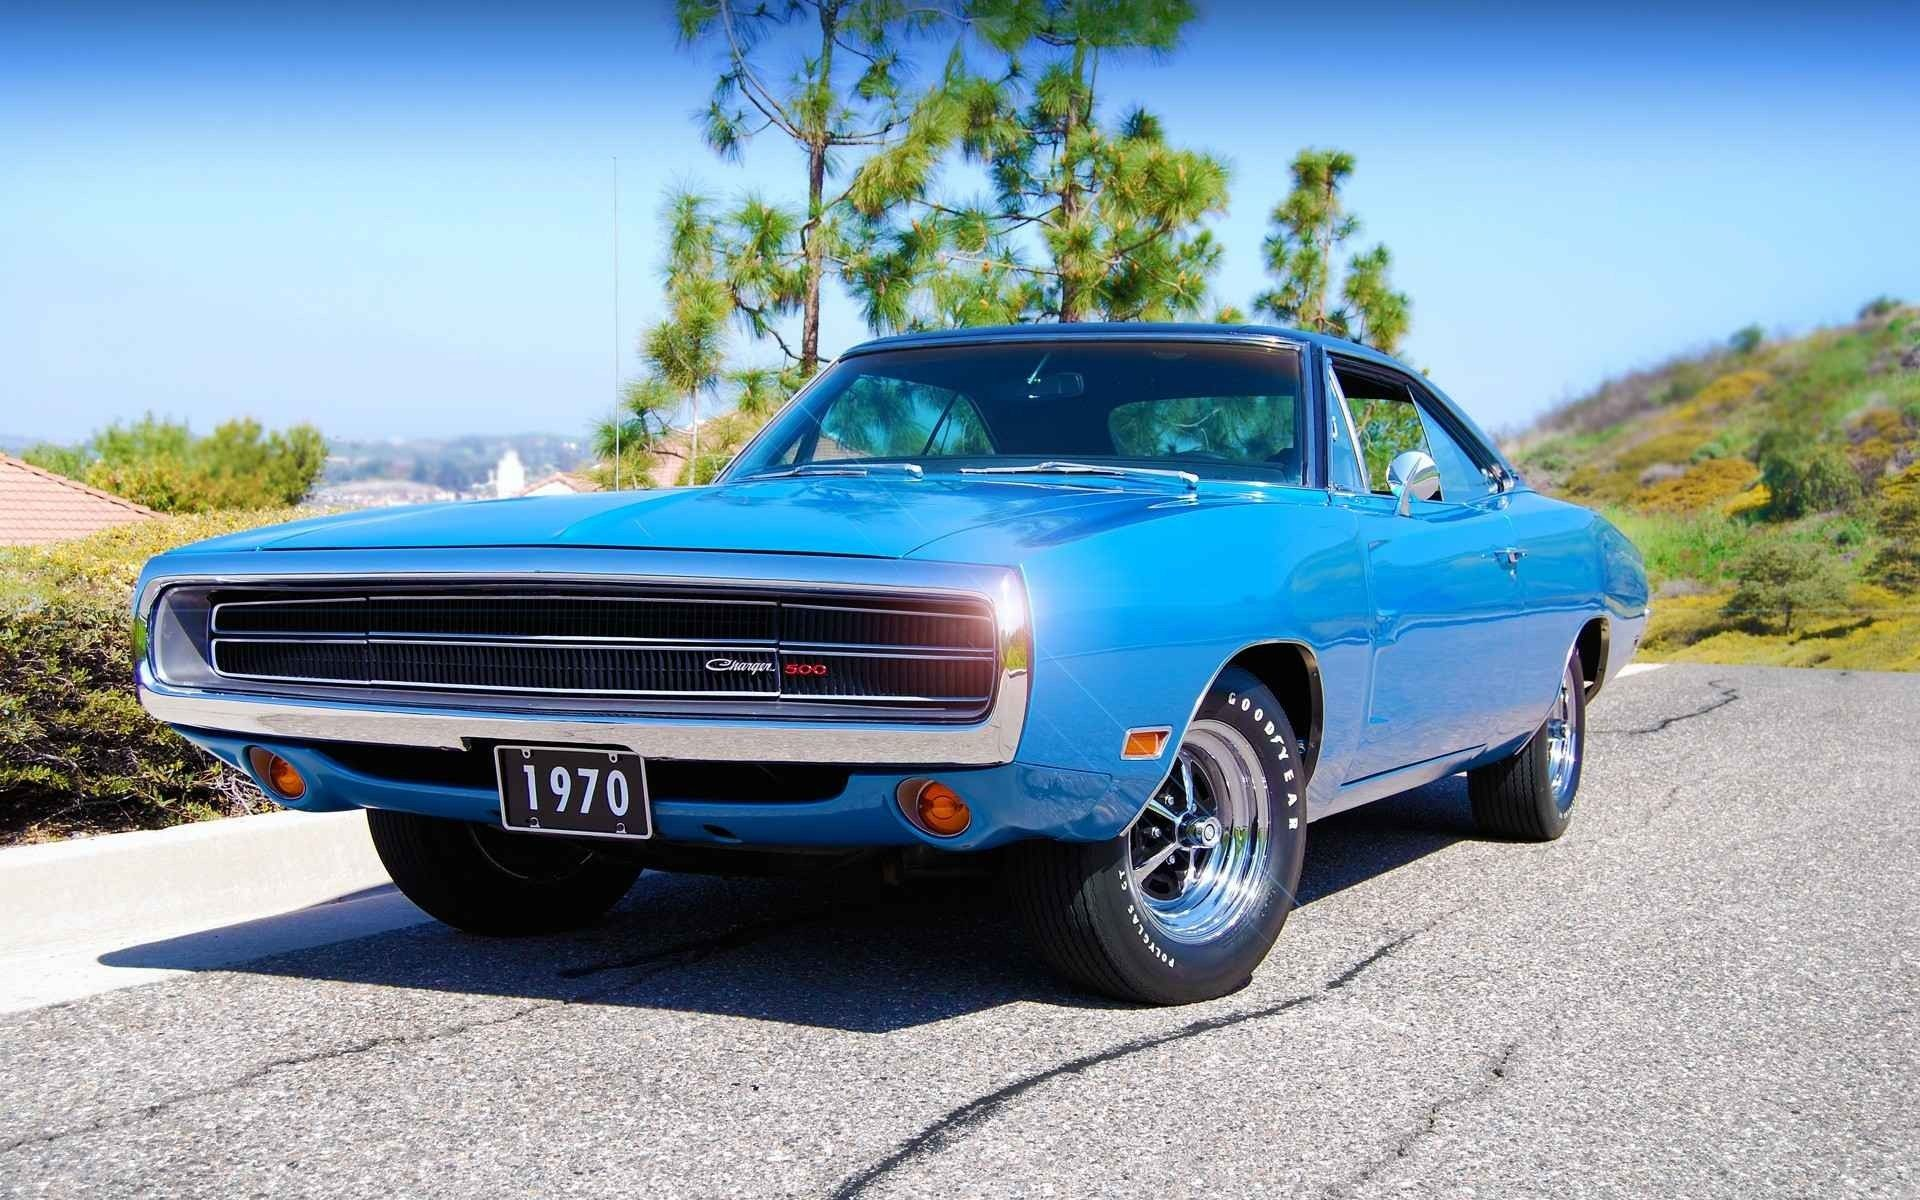 Car Muscle Cars Dodge Charger Wallpapers Hd …